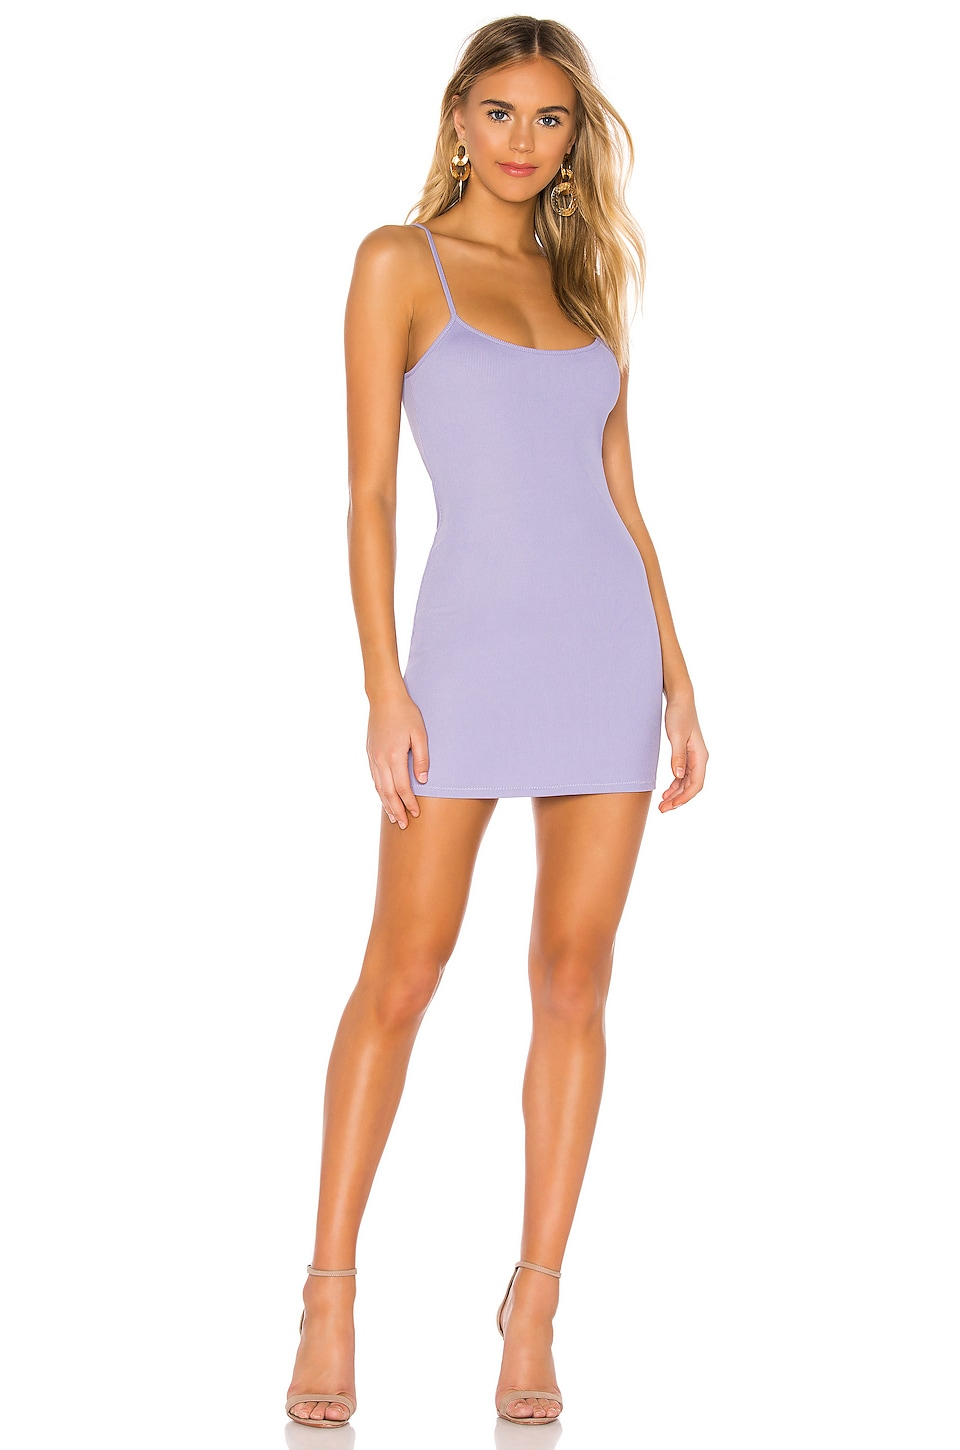 NBD Melissa Mini Dress in Pastel Lilac